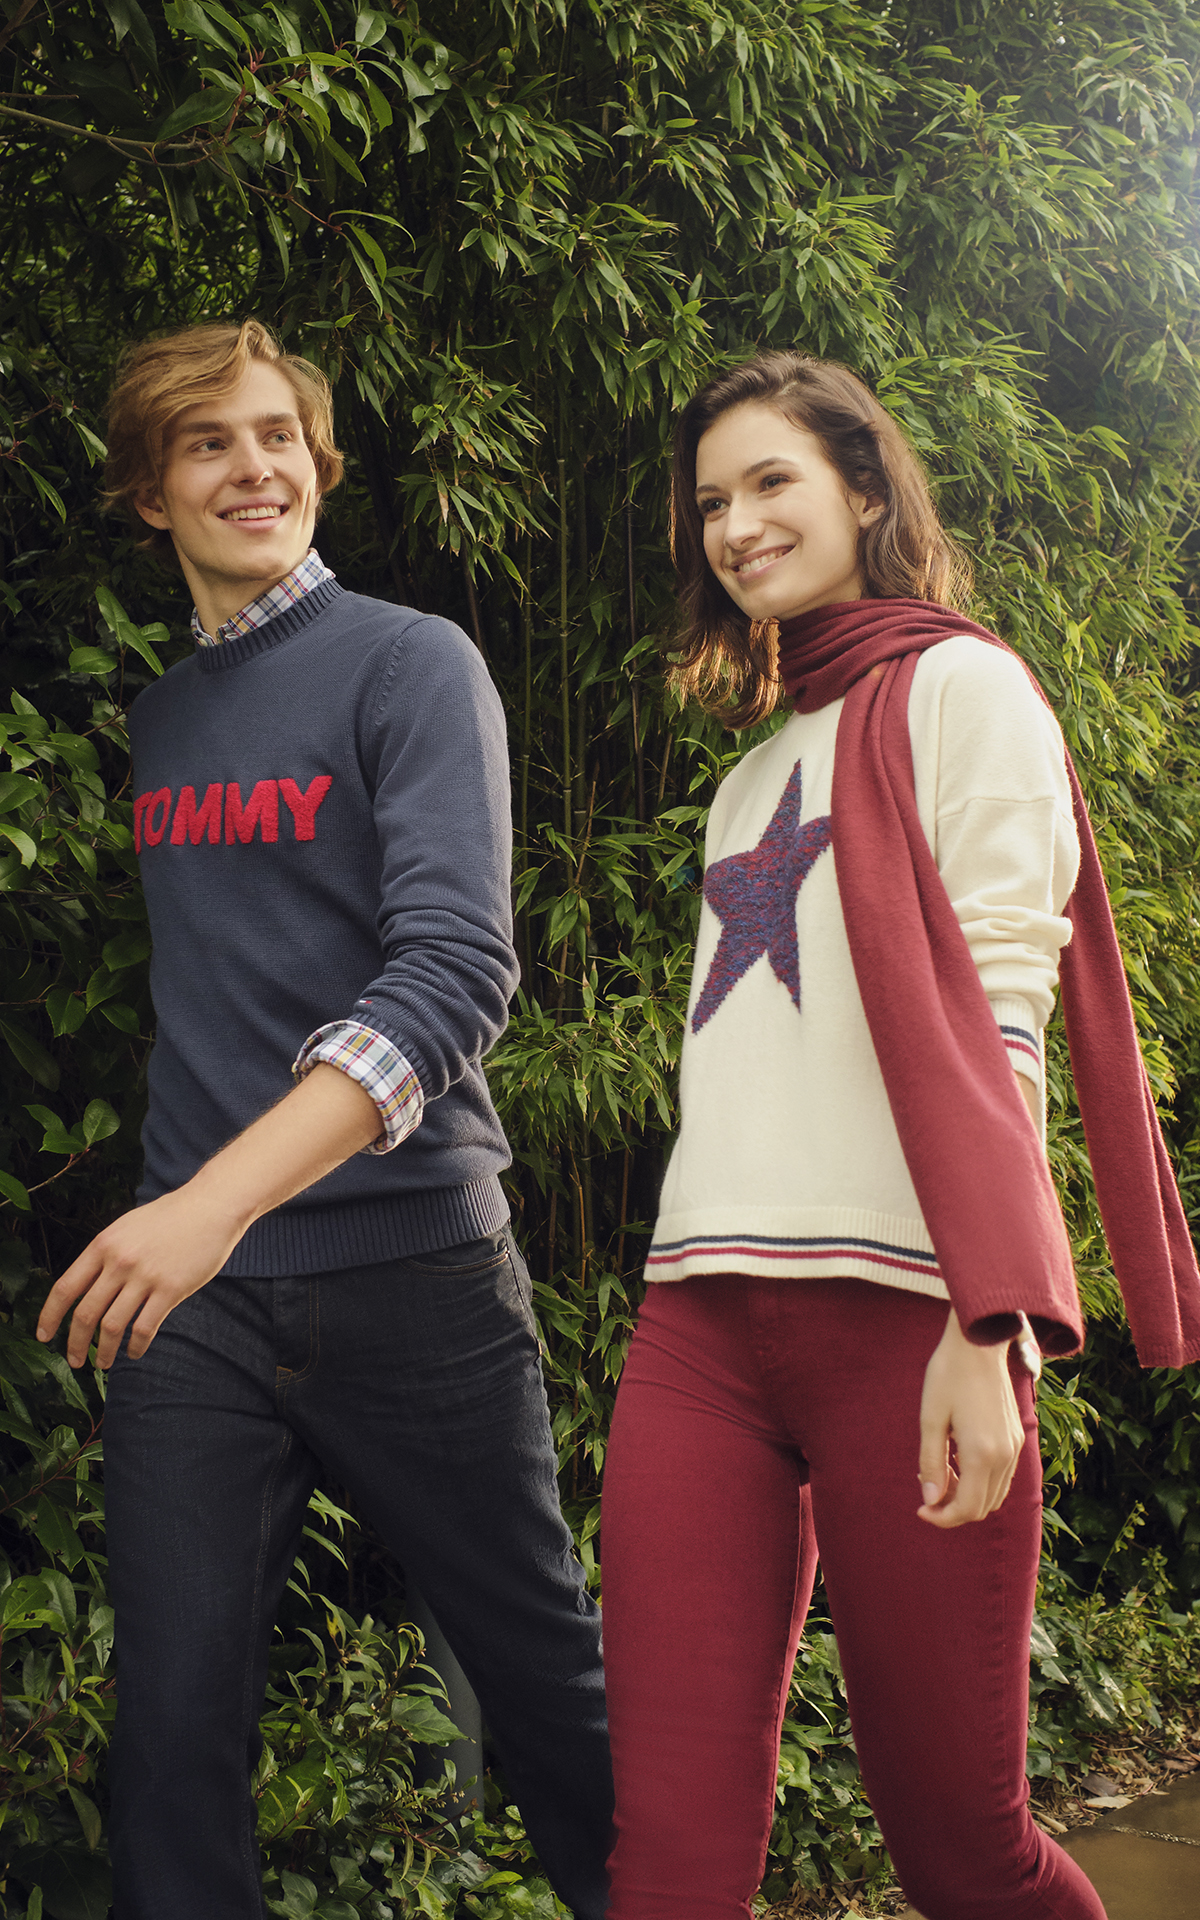 Couple in Tommy Hlifiger clothing